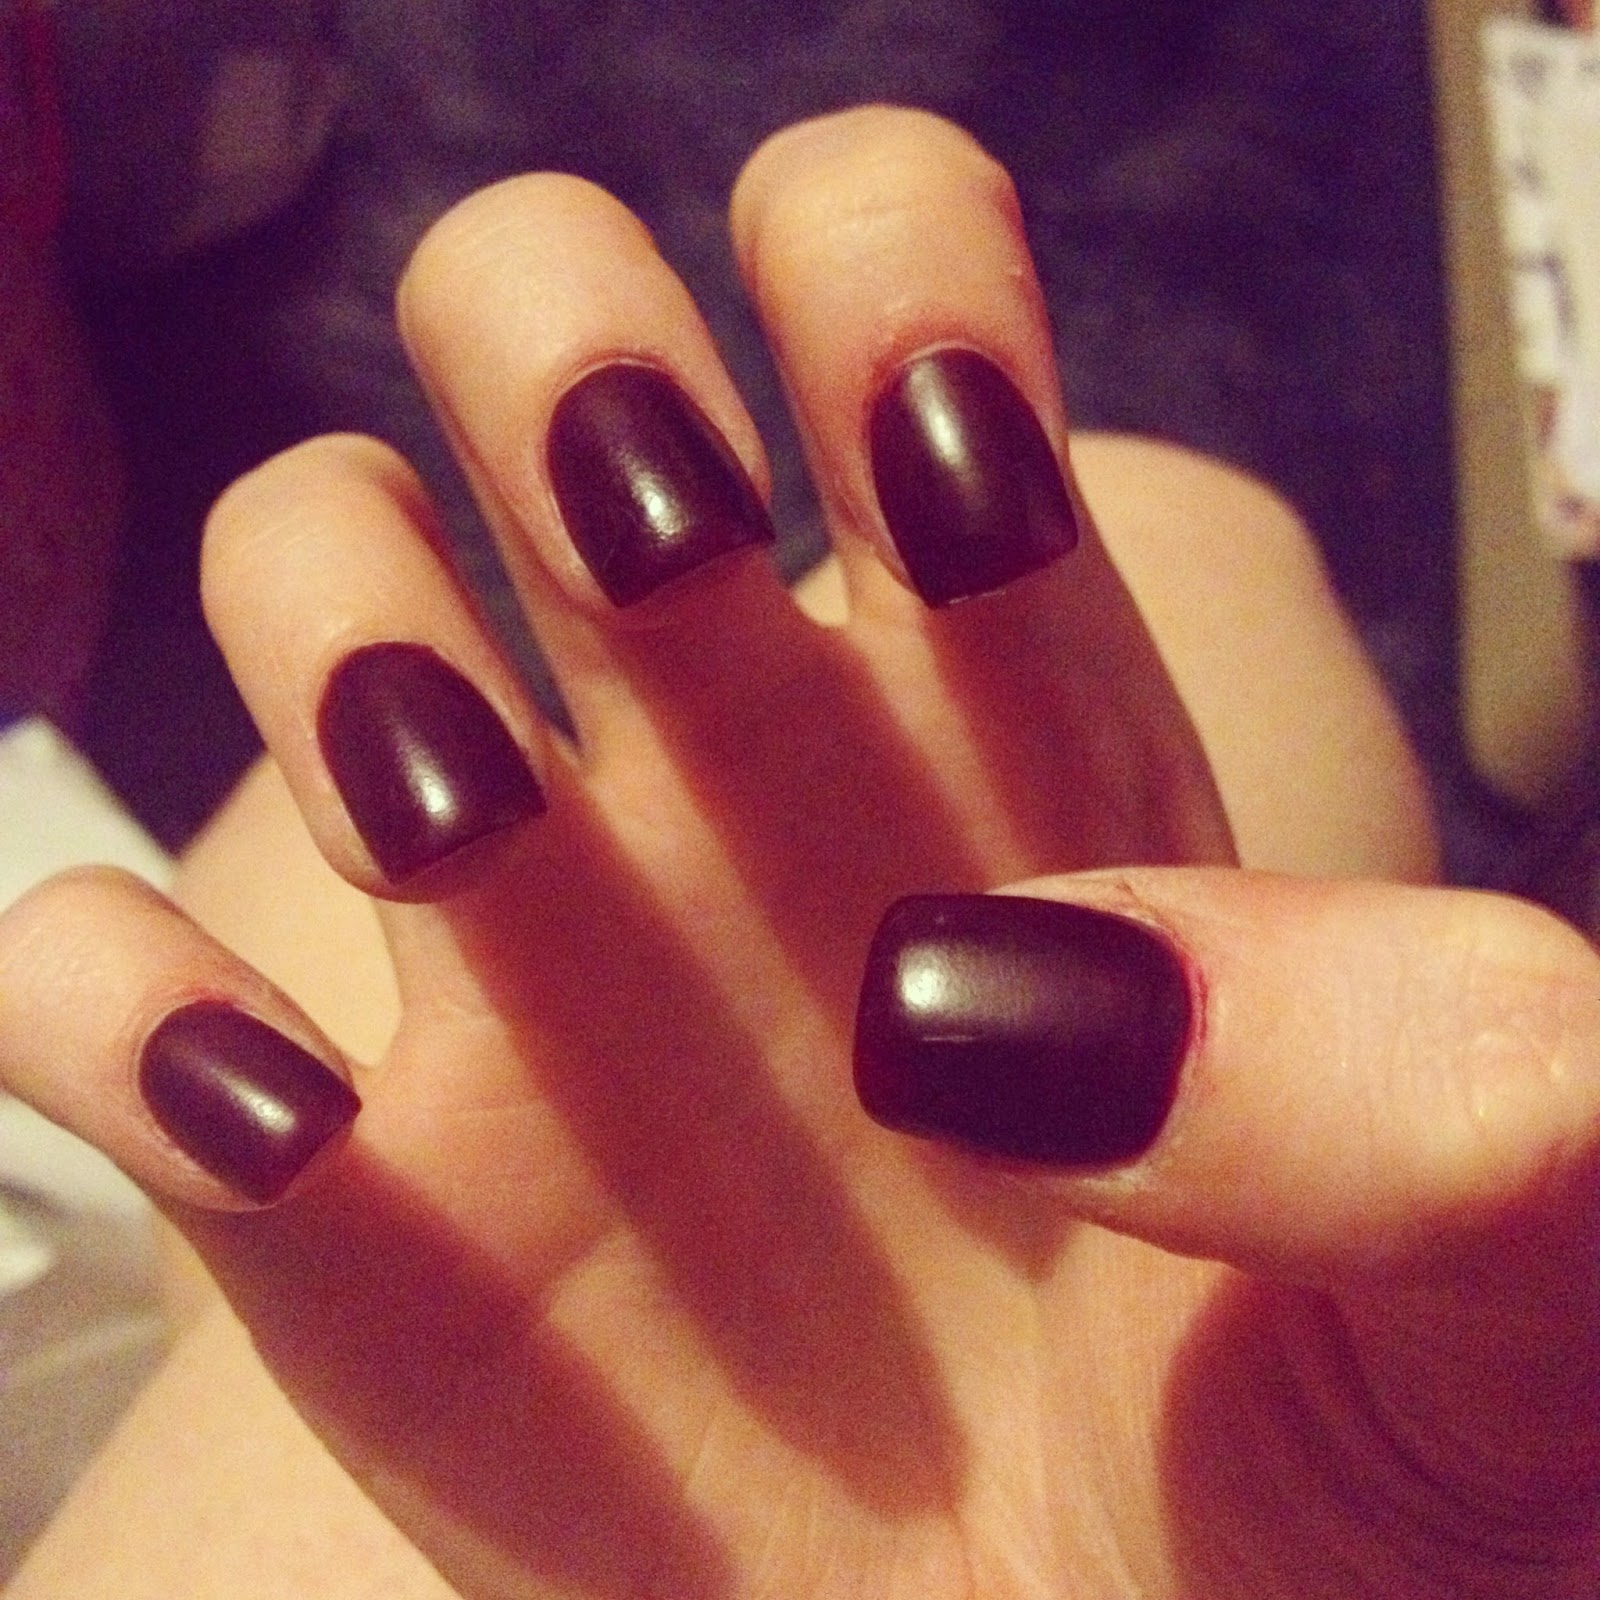 Trend Of Days.: TLC after acrylic nails!